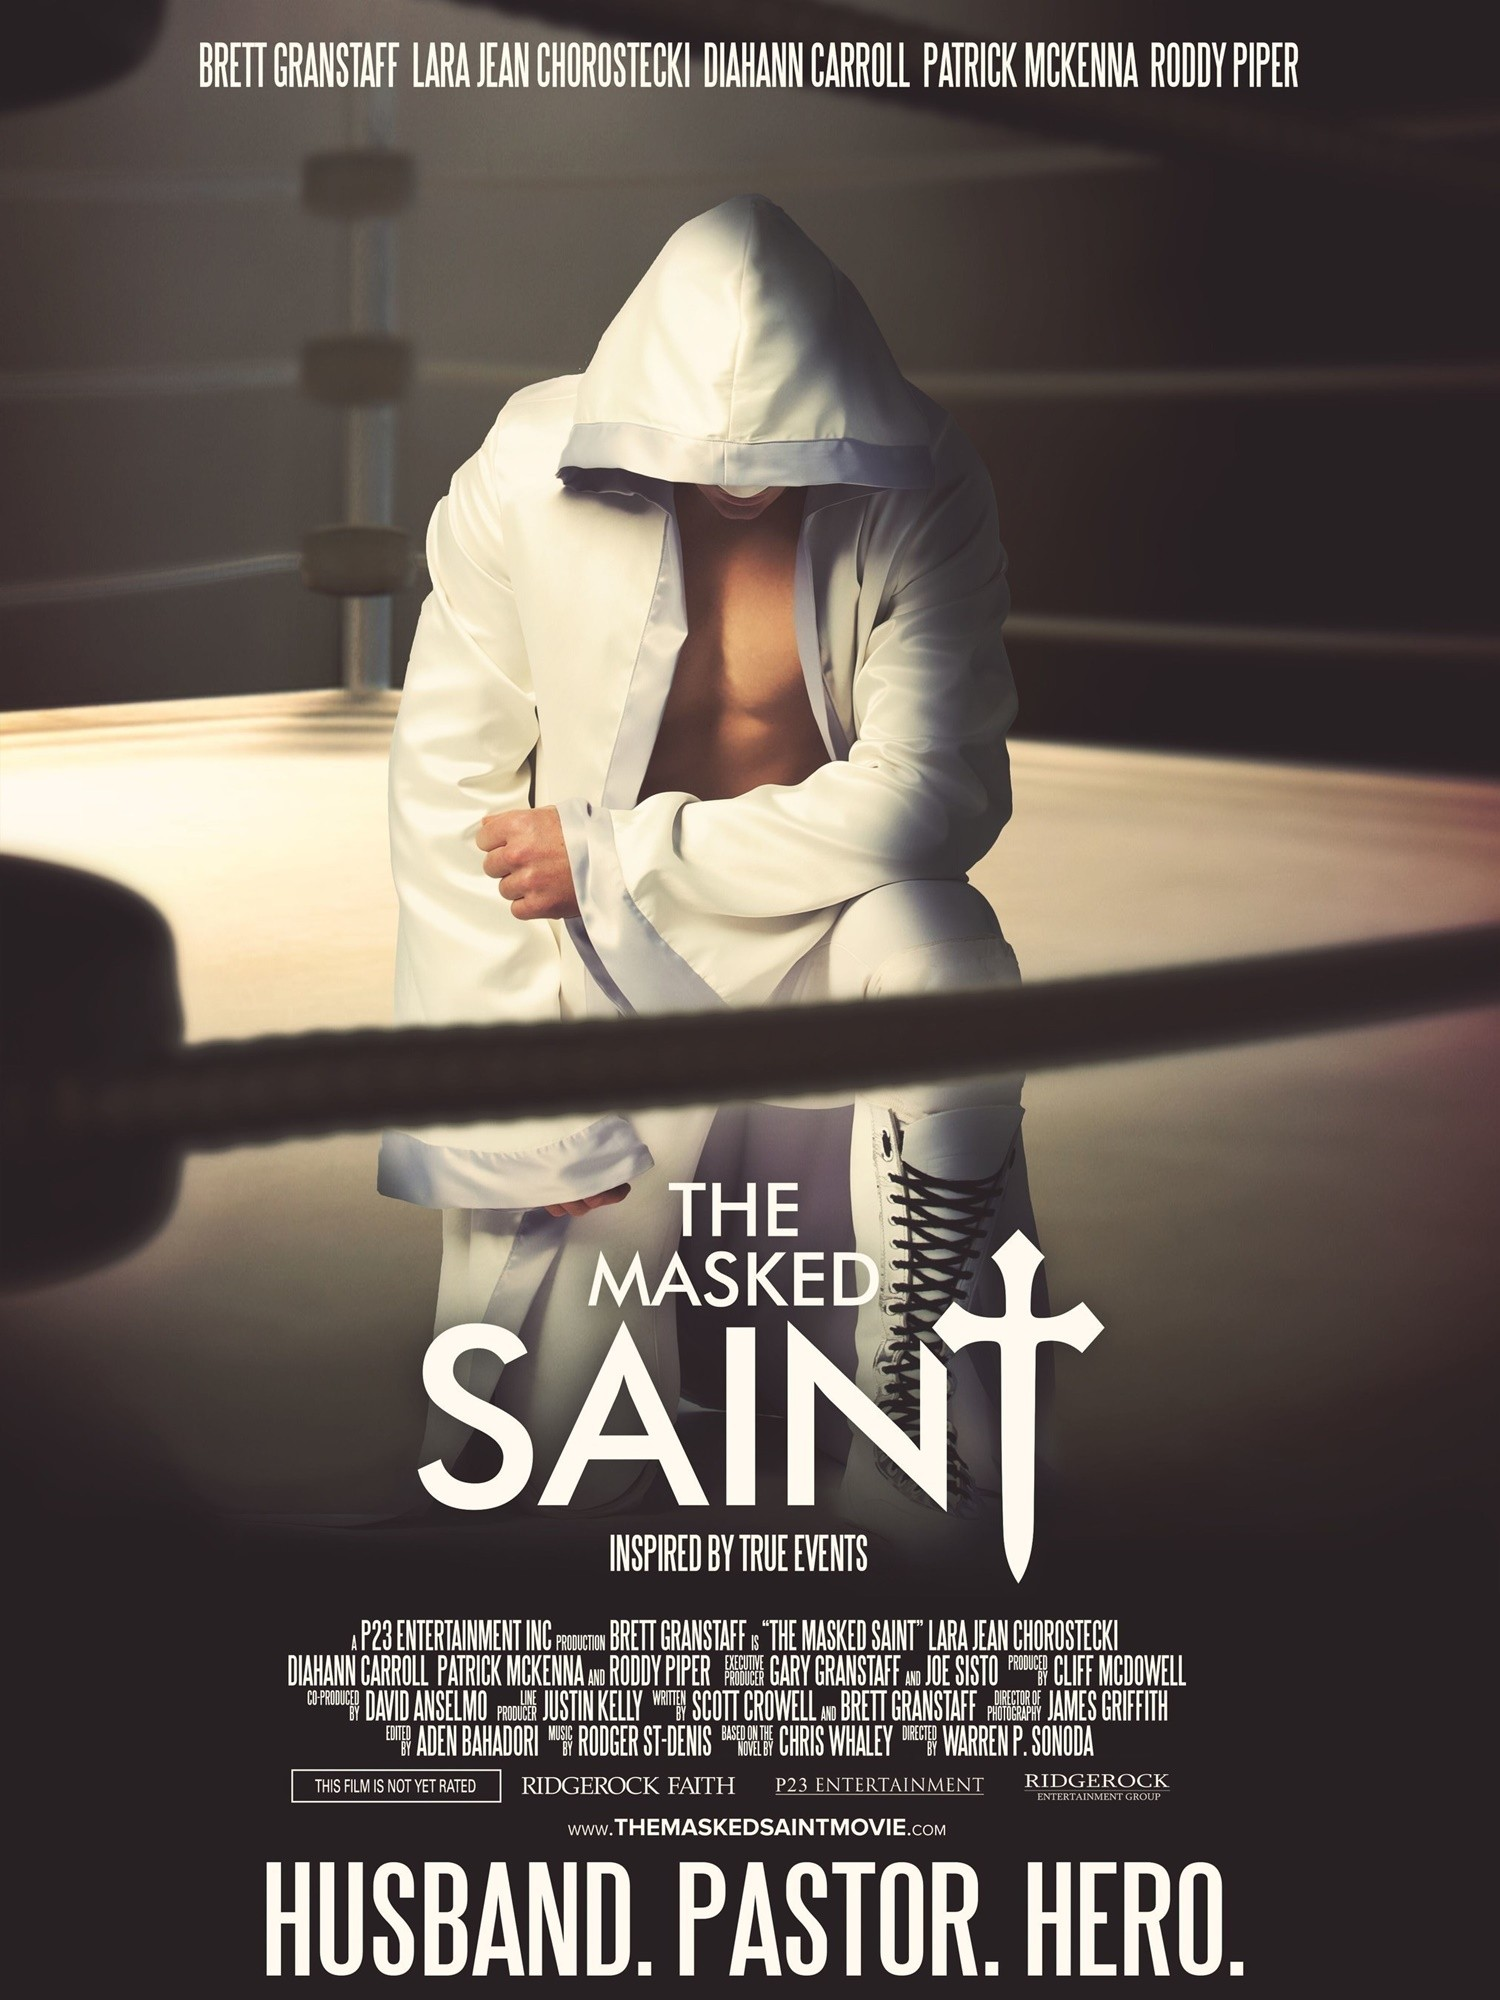 Ridgerock Entertainment Group and P23 Entertainment Inc. announce the January 8, 2016 theatrical release of THE MASKED SAINT through Freestyle Releasing. (PRNewsFoto/Ridgerock Entertainment Group)